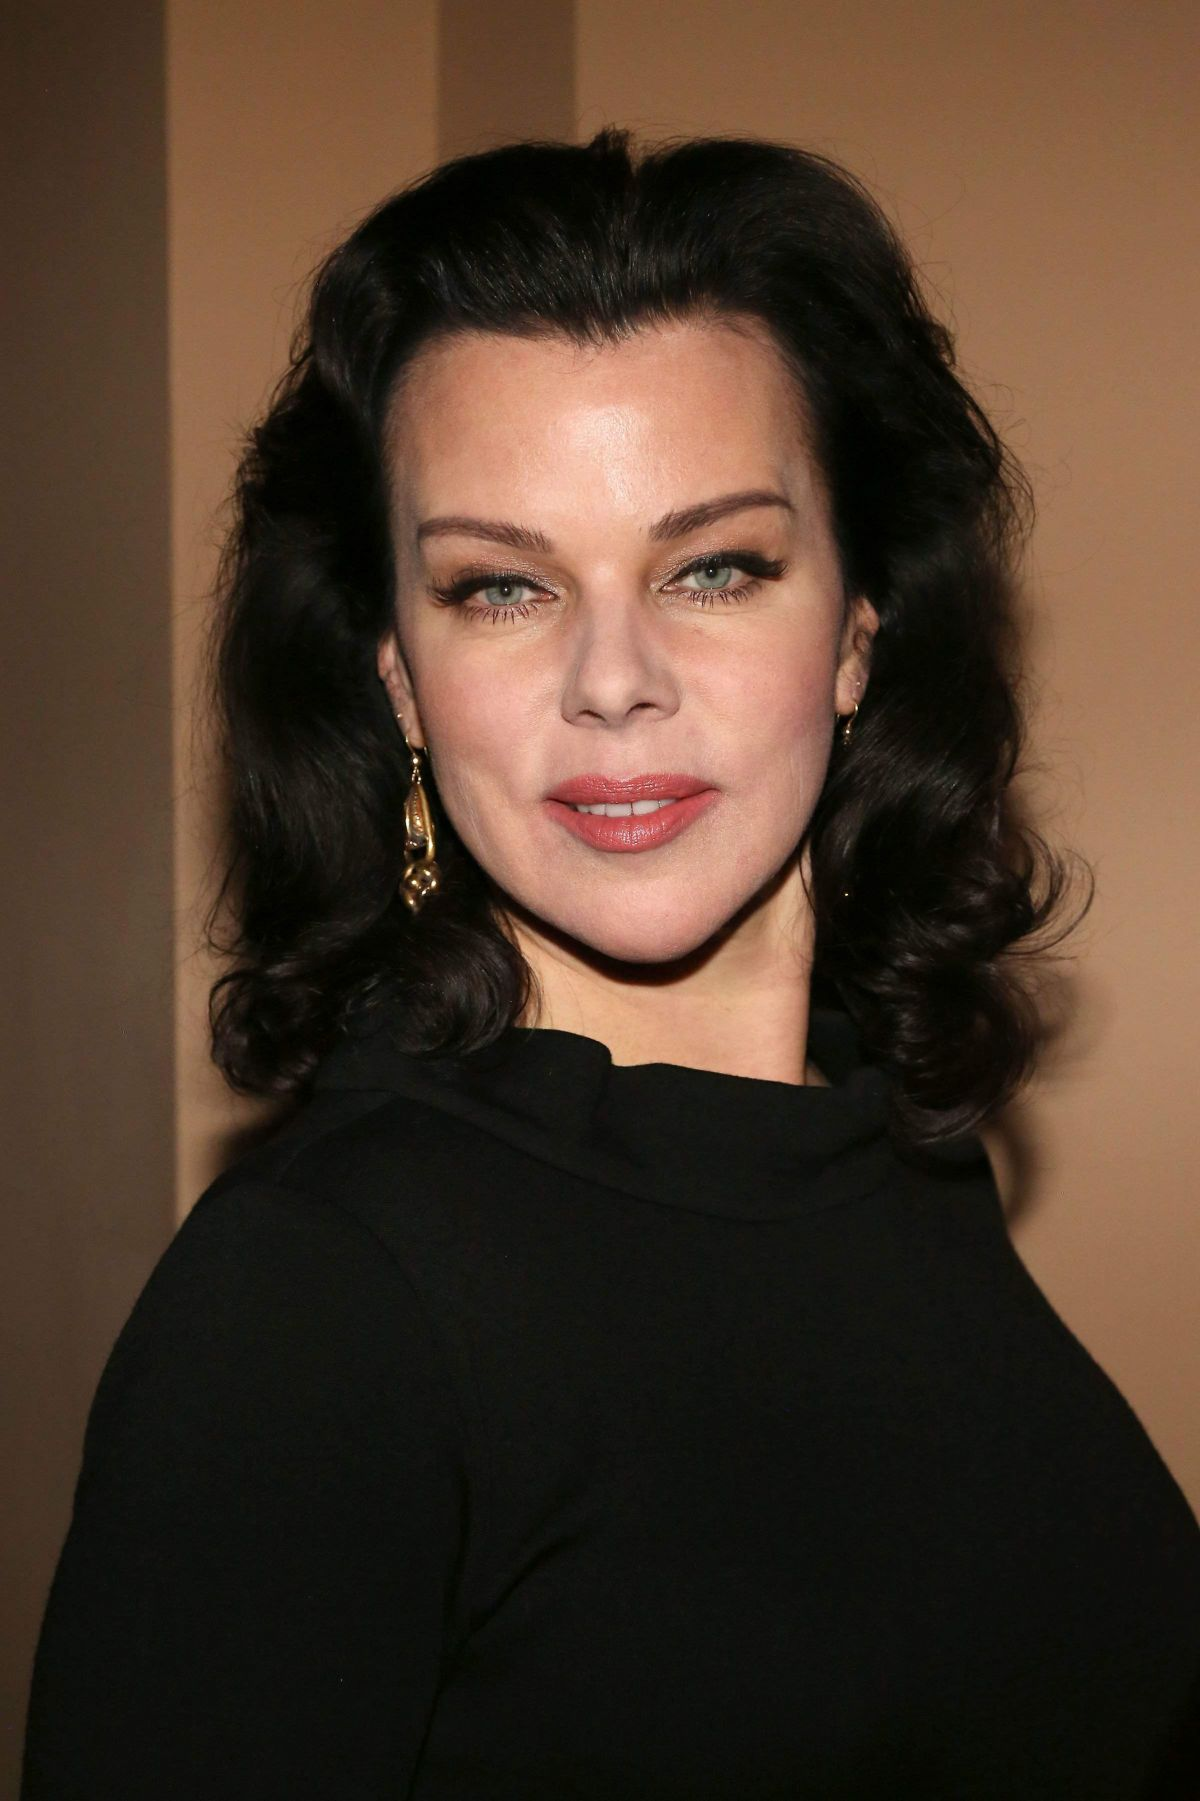 debi mazar daughtersdebi mazar young, debi mazar husband, debi mazar wdw, debi mazar madonna, debi mazar 2016, debi mazar wiki, debi mazar, debi mazar imdb, debi mazar instagram, debi mazar and gabriele corcos, debi mazar goodfellas, debi mazar daughters, debi mazar entourage, debi mazar batman, debi mazar twitter, debi mazar beethoven, debi mazar 2015, debi mazar movies list, debi mazar wikipedia, debi mazar net worth